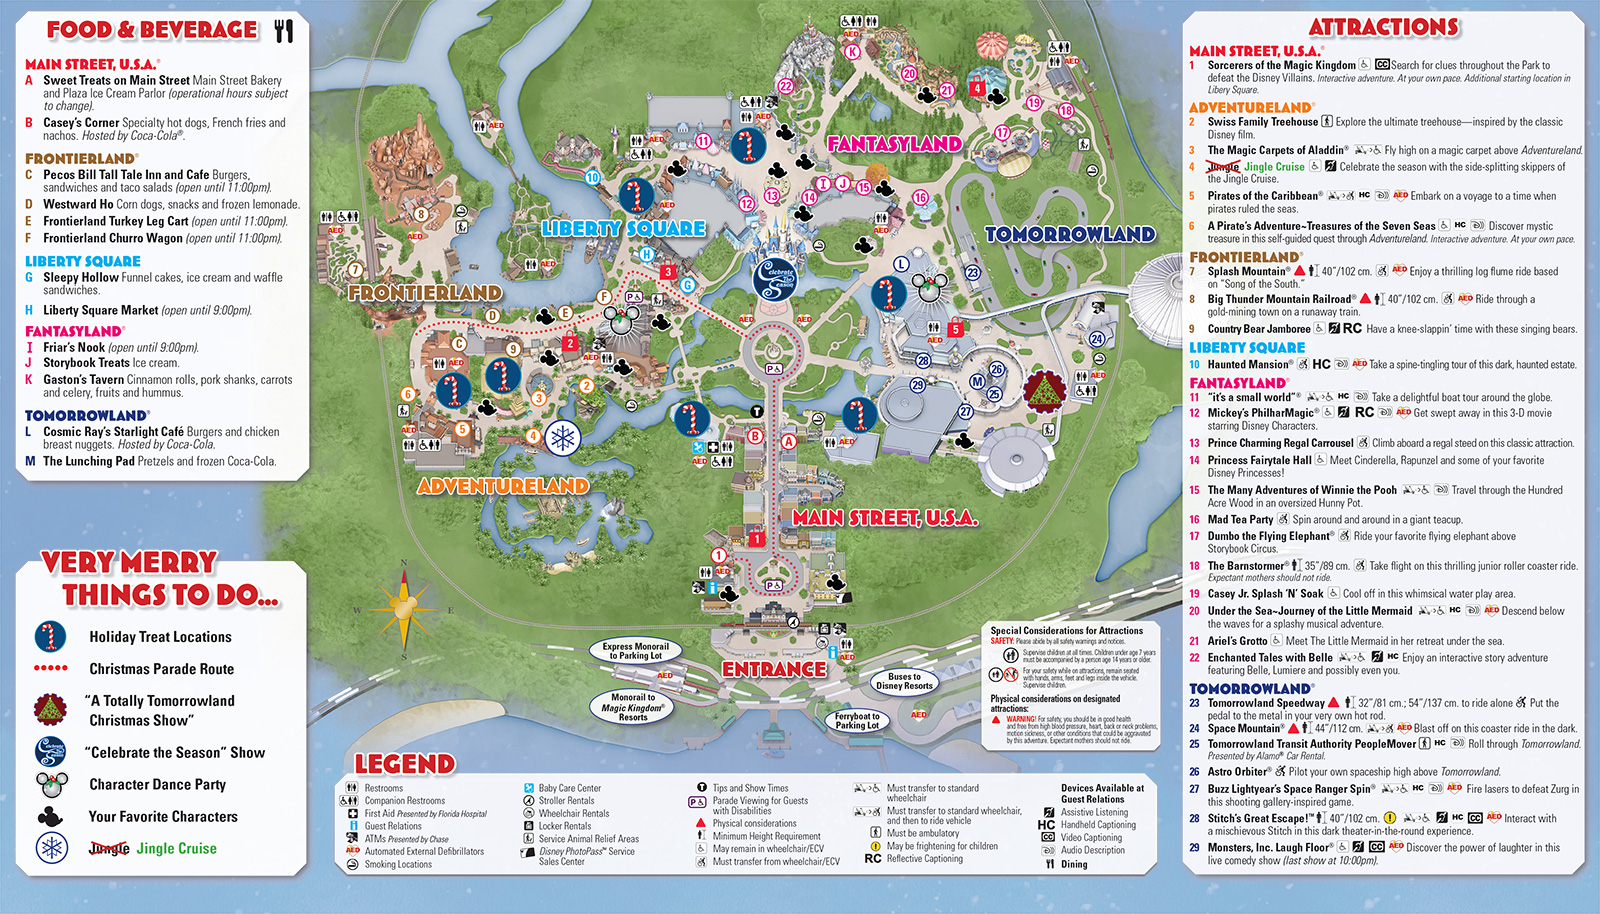 Mickey's Very Merry Christmas Party 2013 guide map - Photo 2 of 2